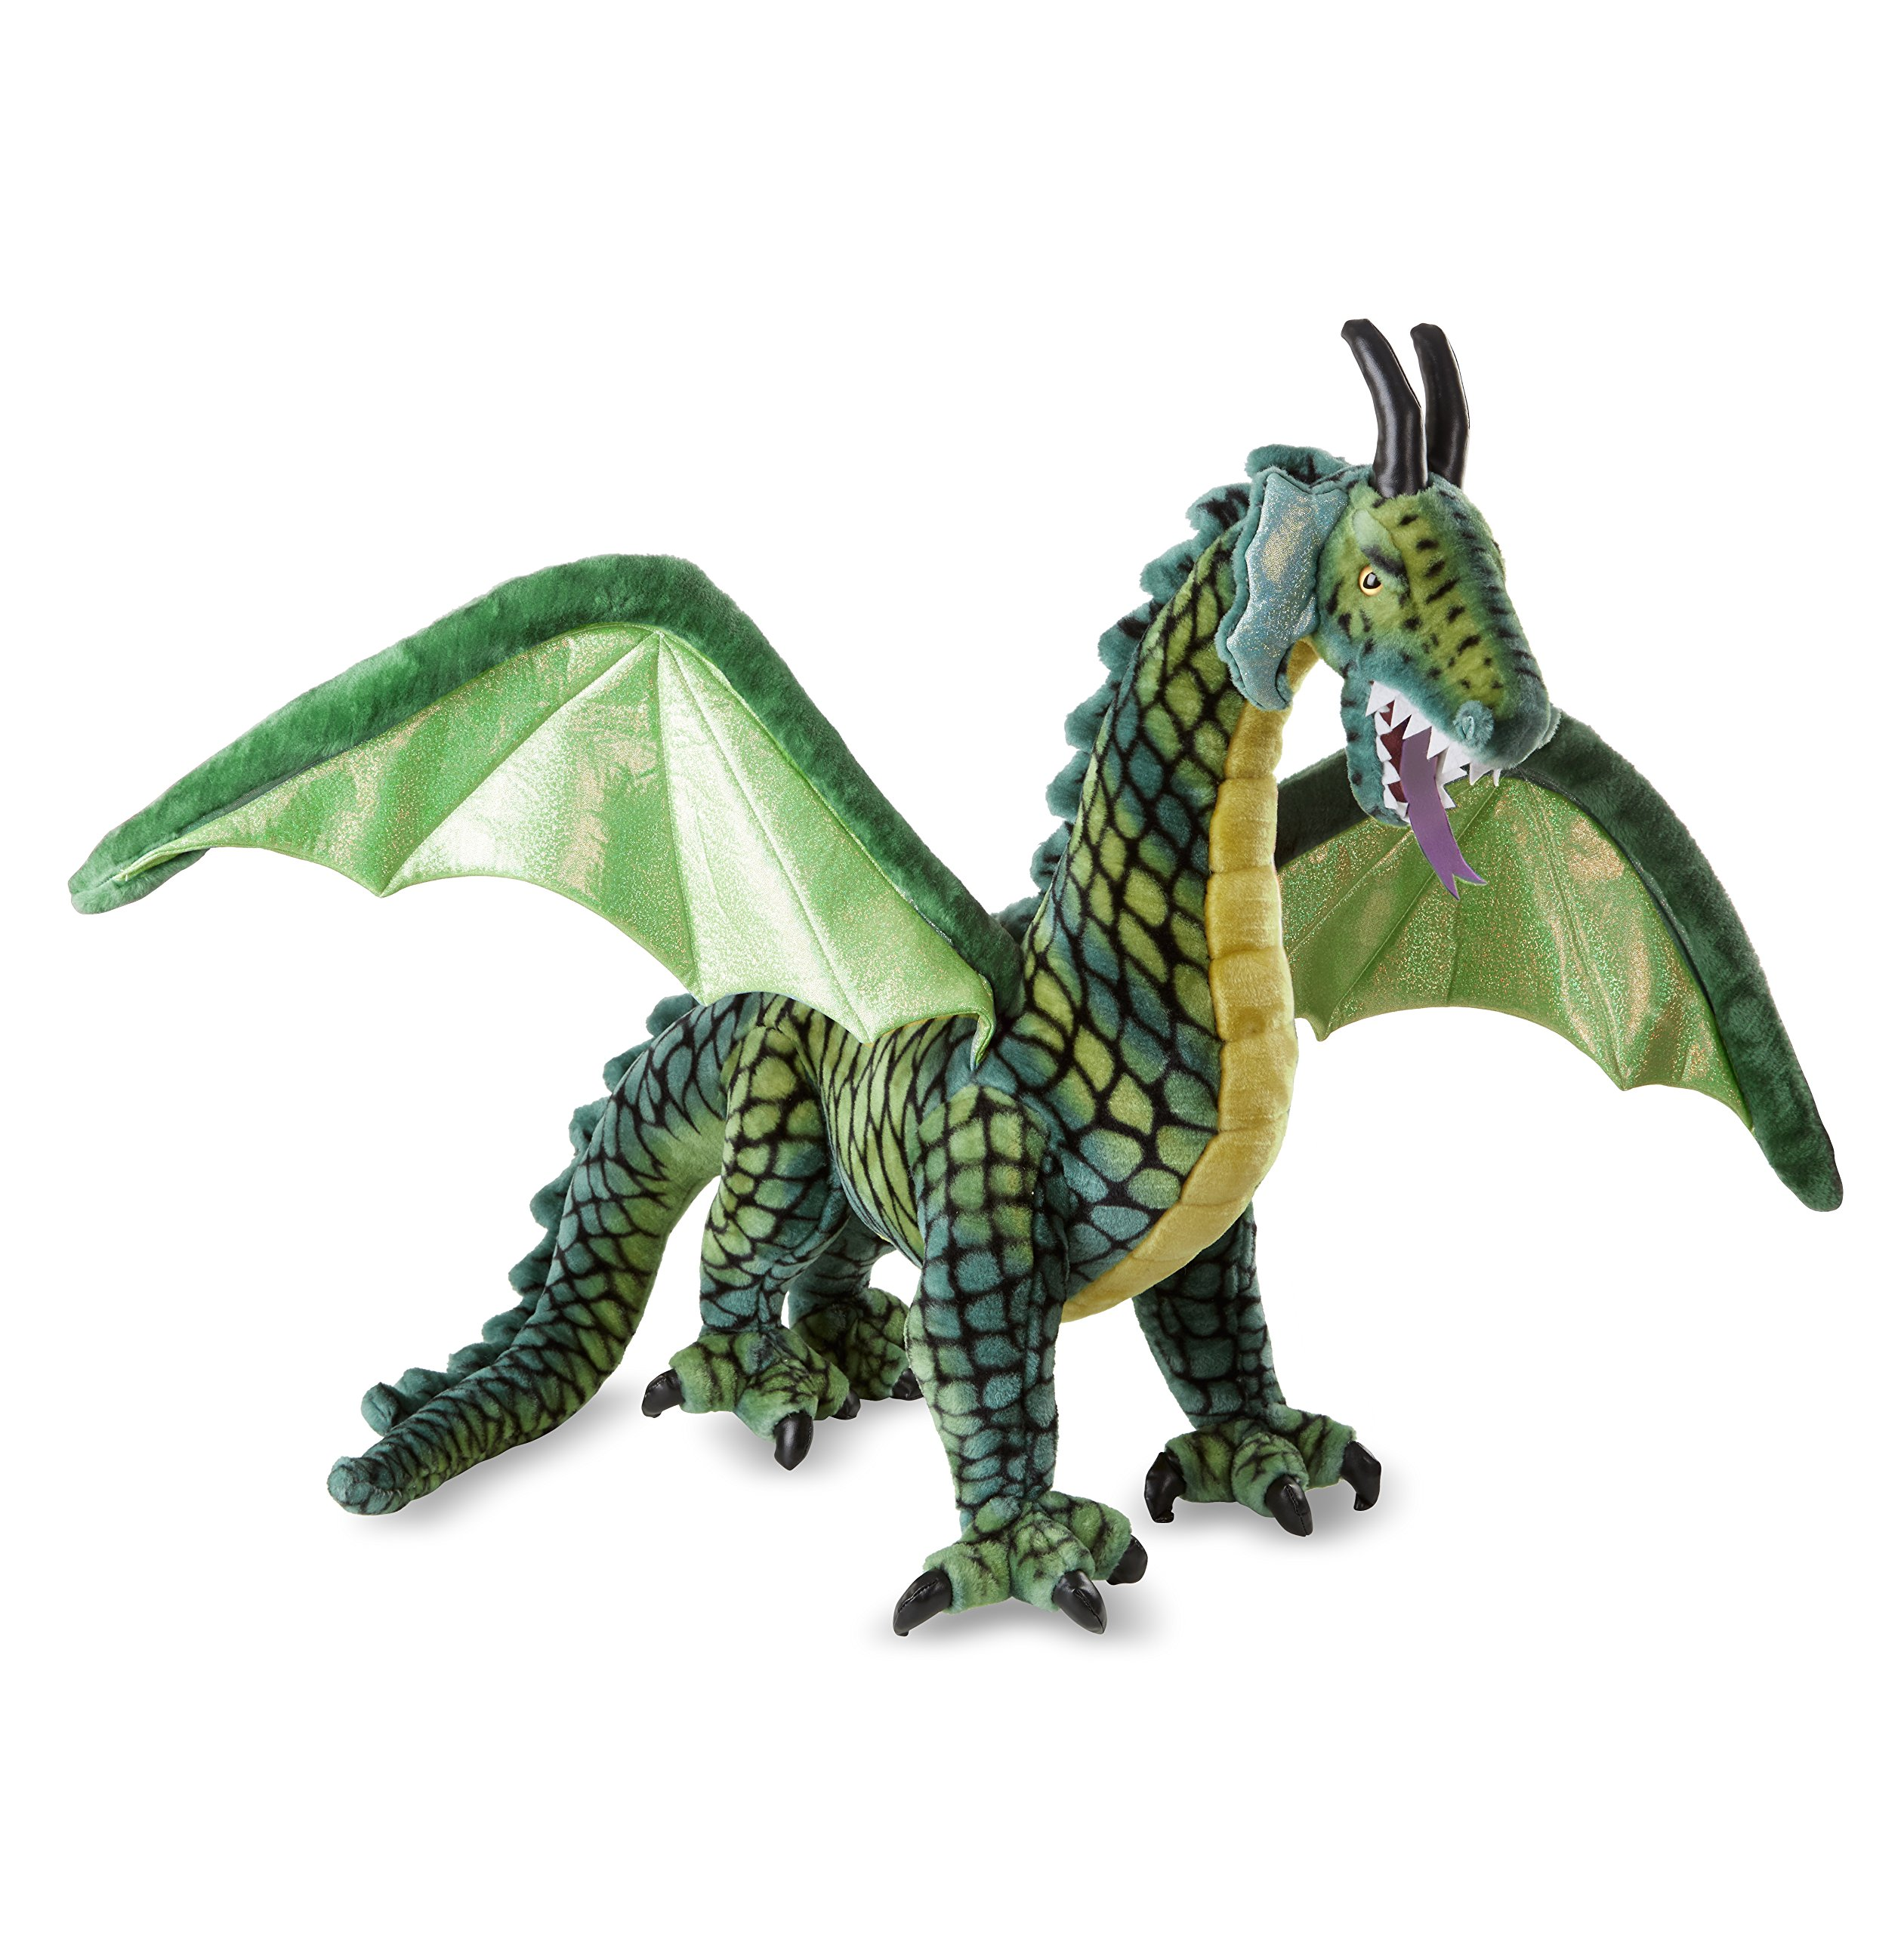 Buy Winged Dragon Plush Now!